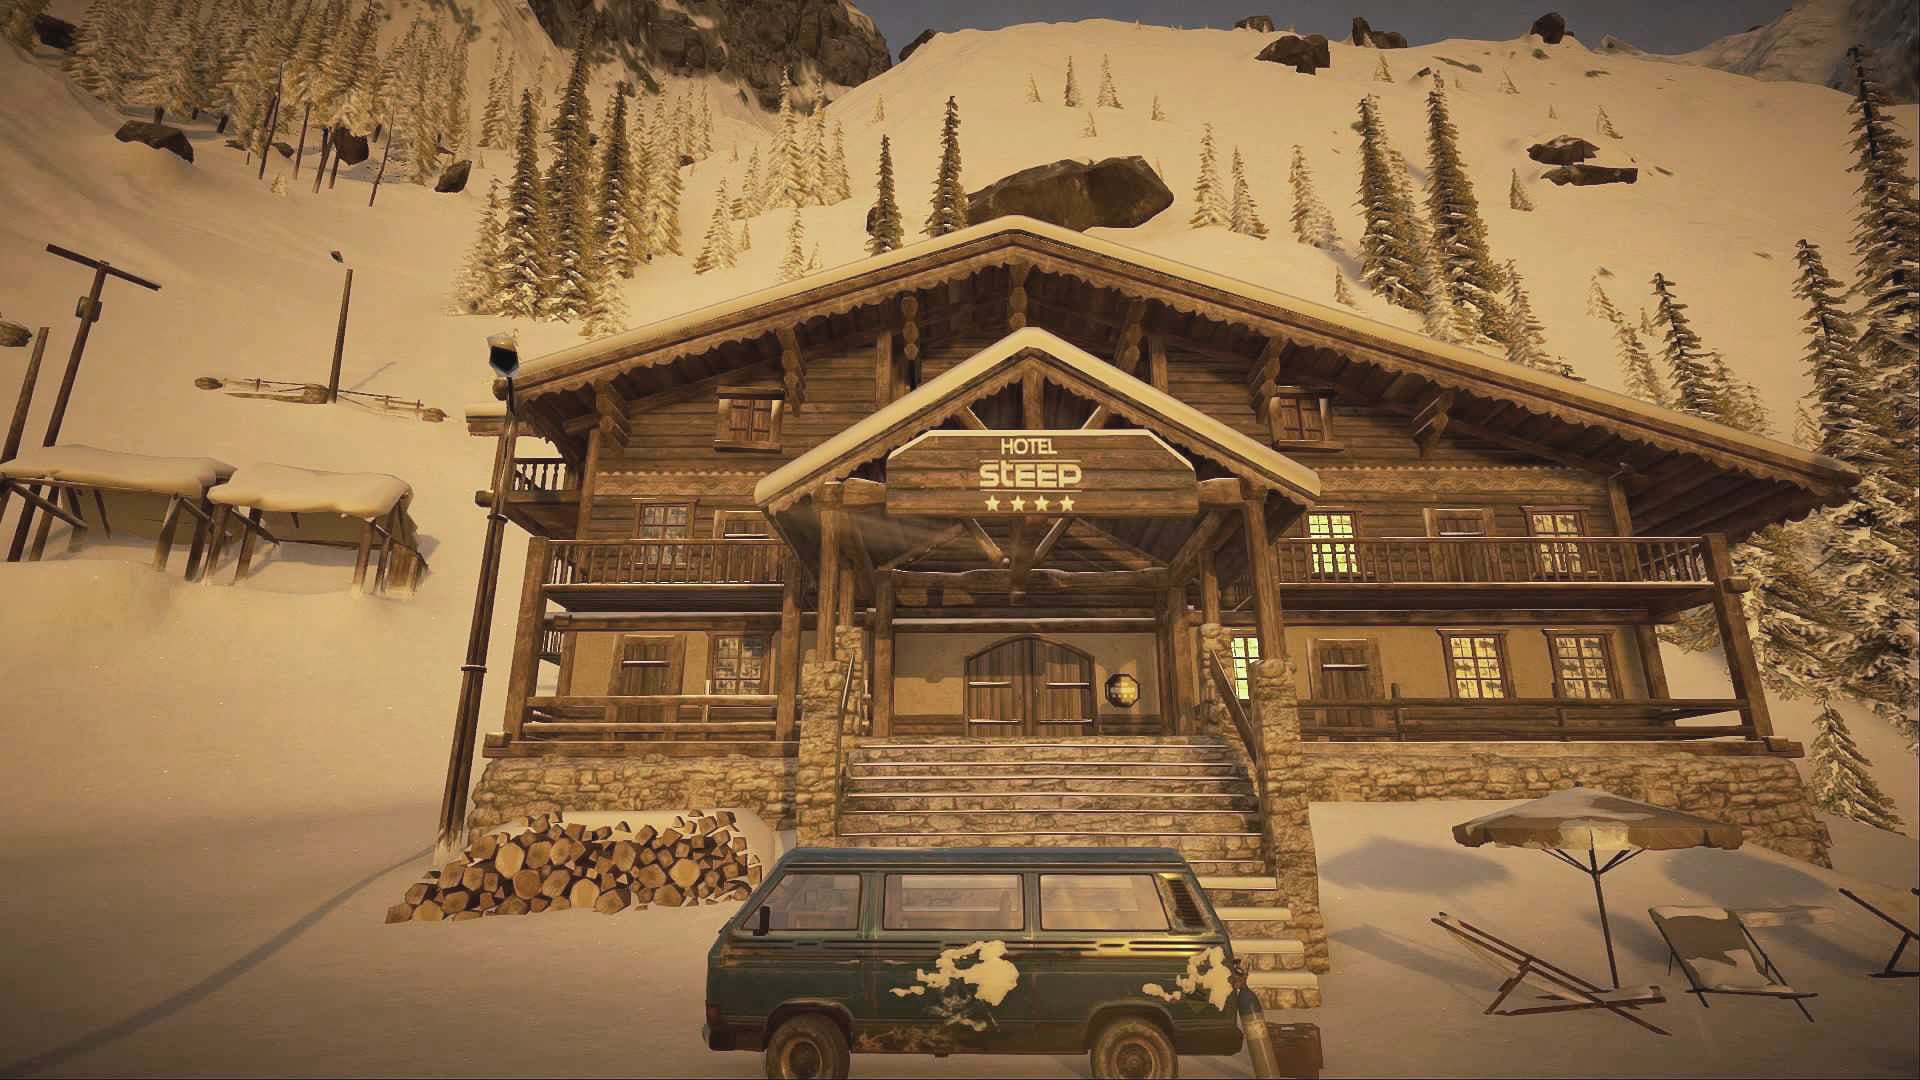 [2019-01-29] Easter Egg Hotel Steep